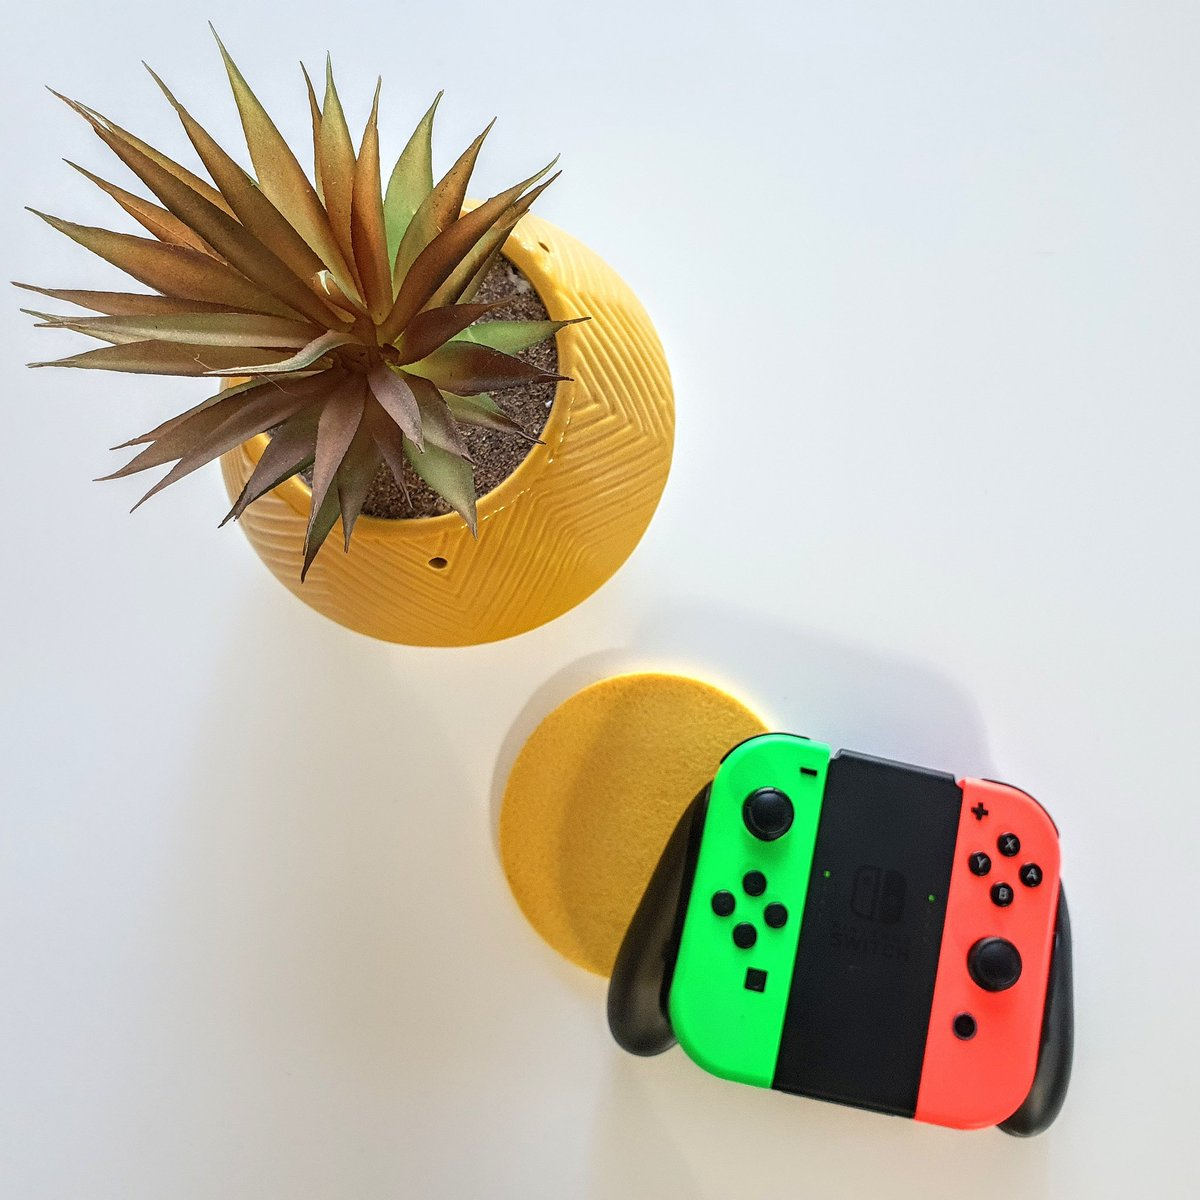 What are your favourite #Nintendo games?   Creative Coconut Games YouTube Channel 🌴🥥   #NintendoSwitch #Nintendo #game #games #yellow #white #control #controller #bristol #couplegoals #favourite #husbandandwife #sunday #lazysunday #gameday #picture